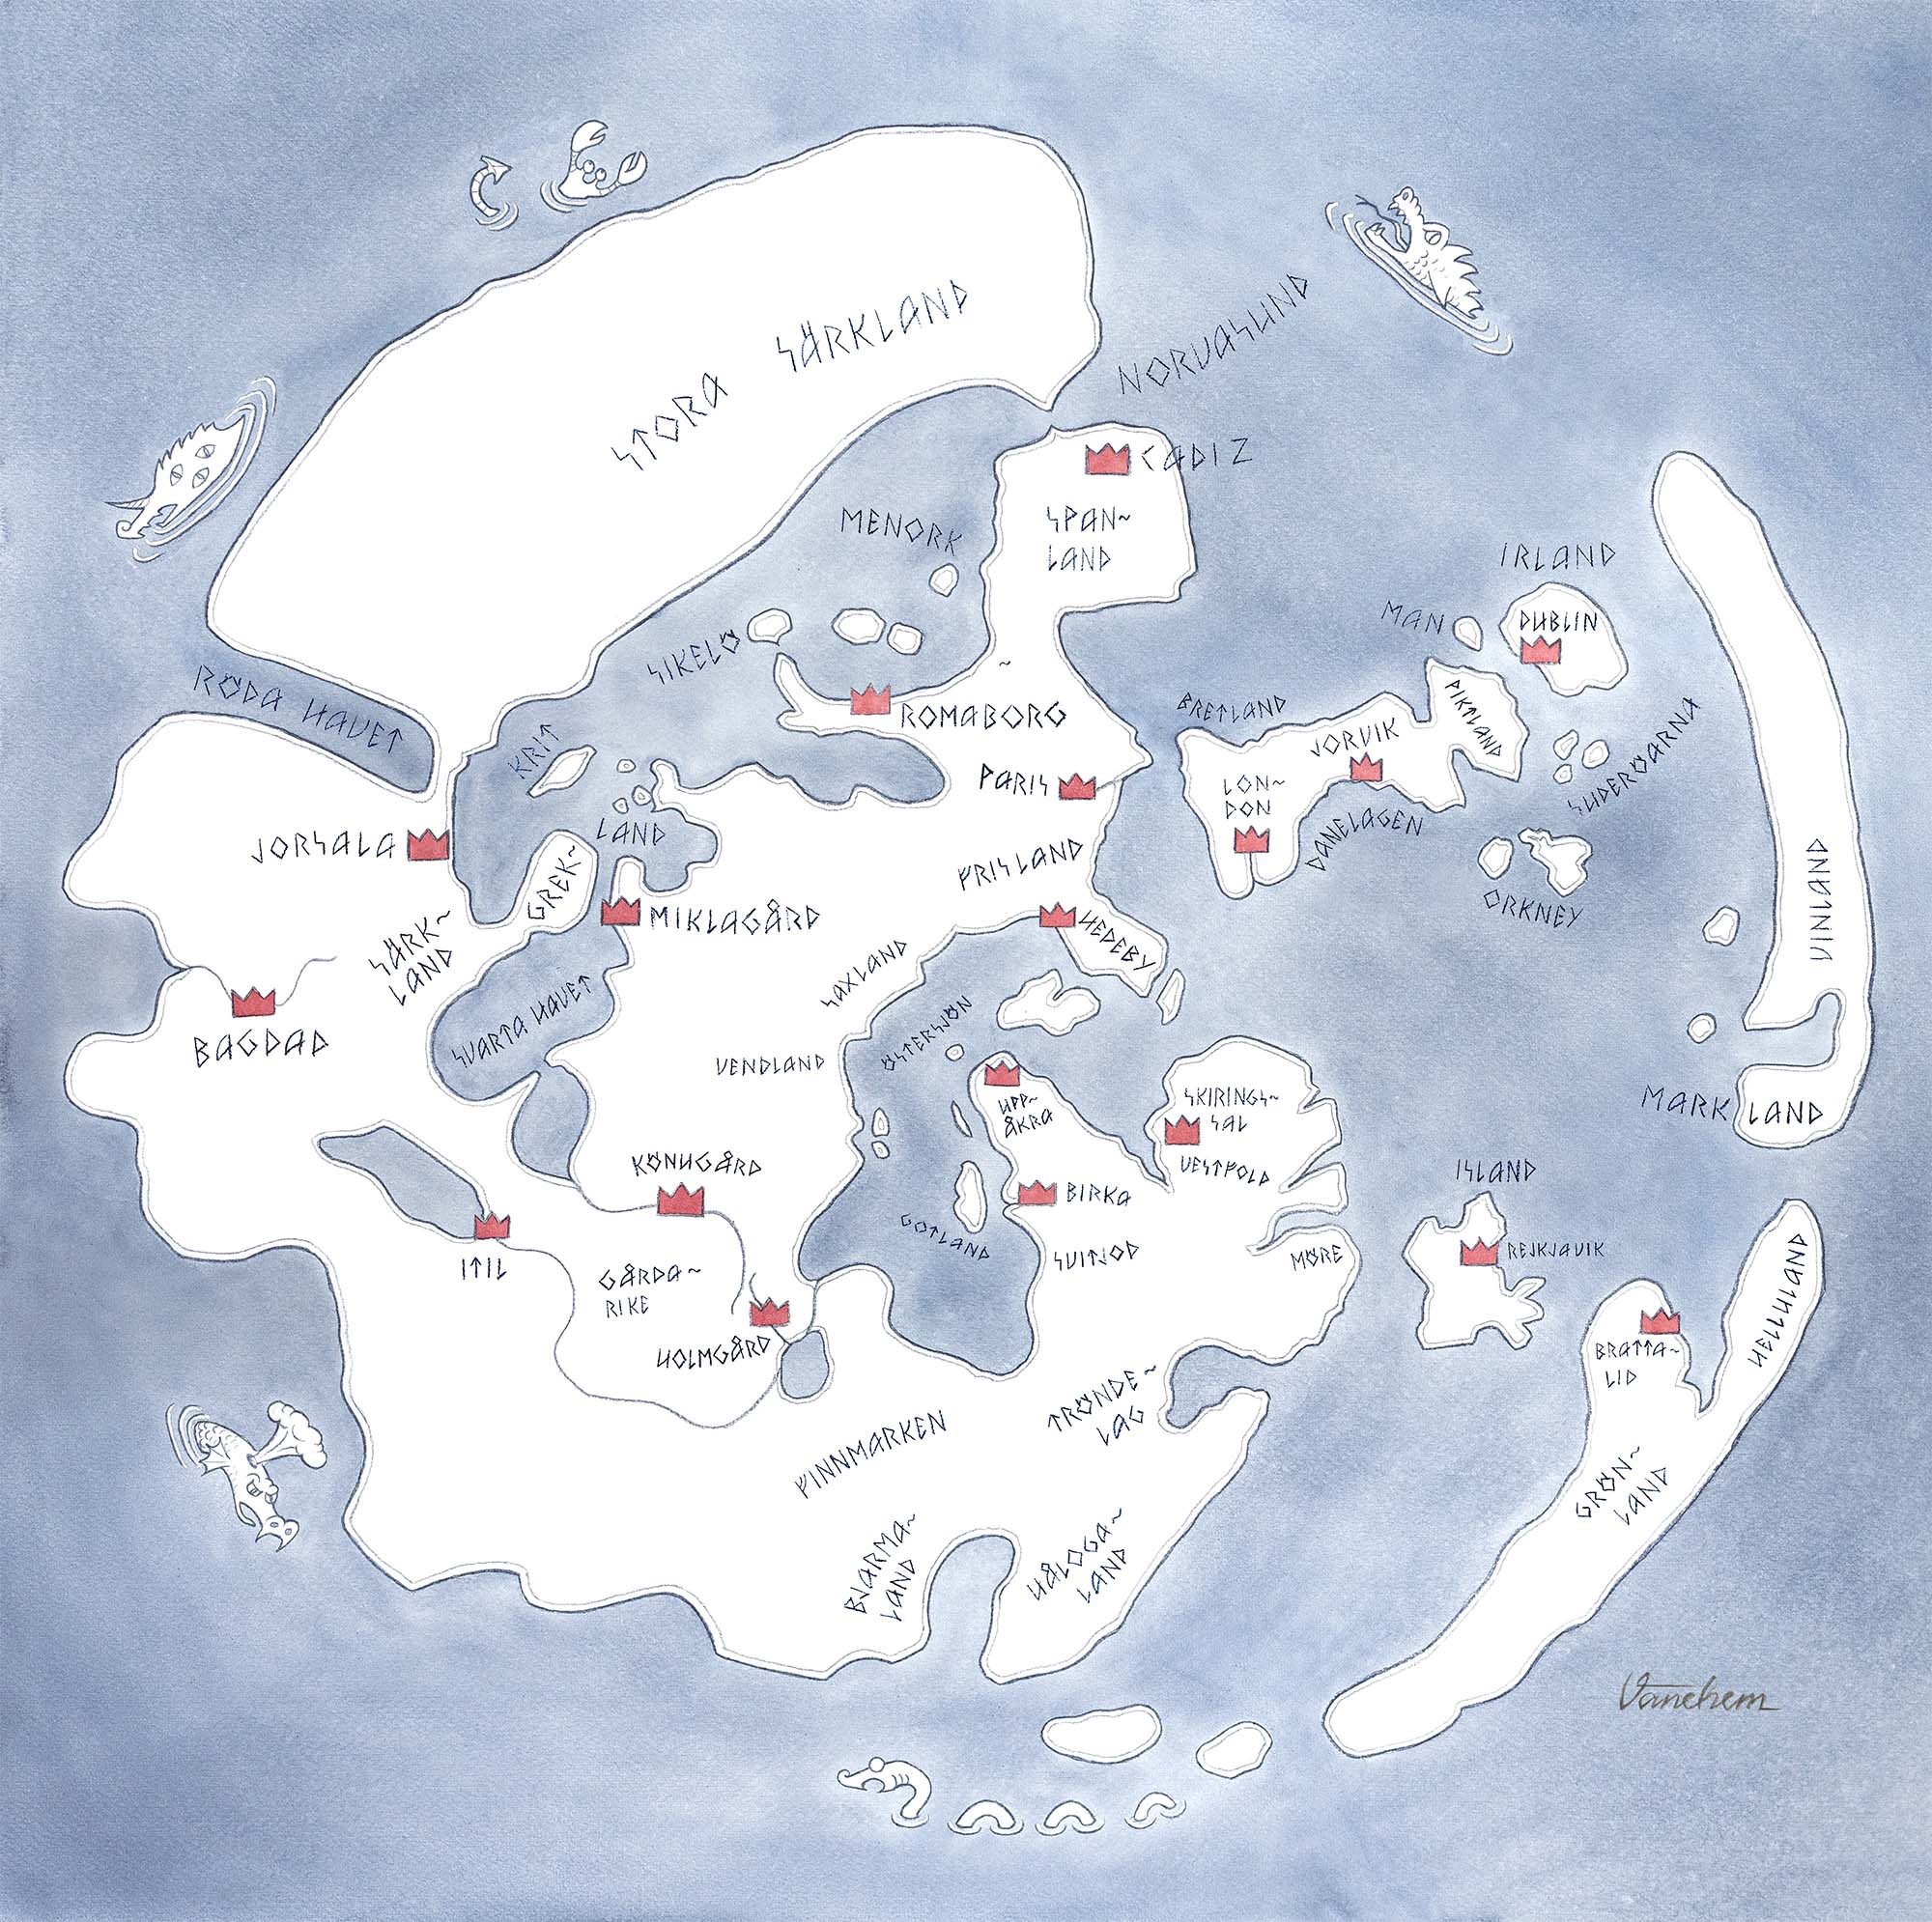 A Viking Age perception of the World (Client: Board game for Bonito)